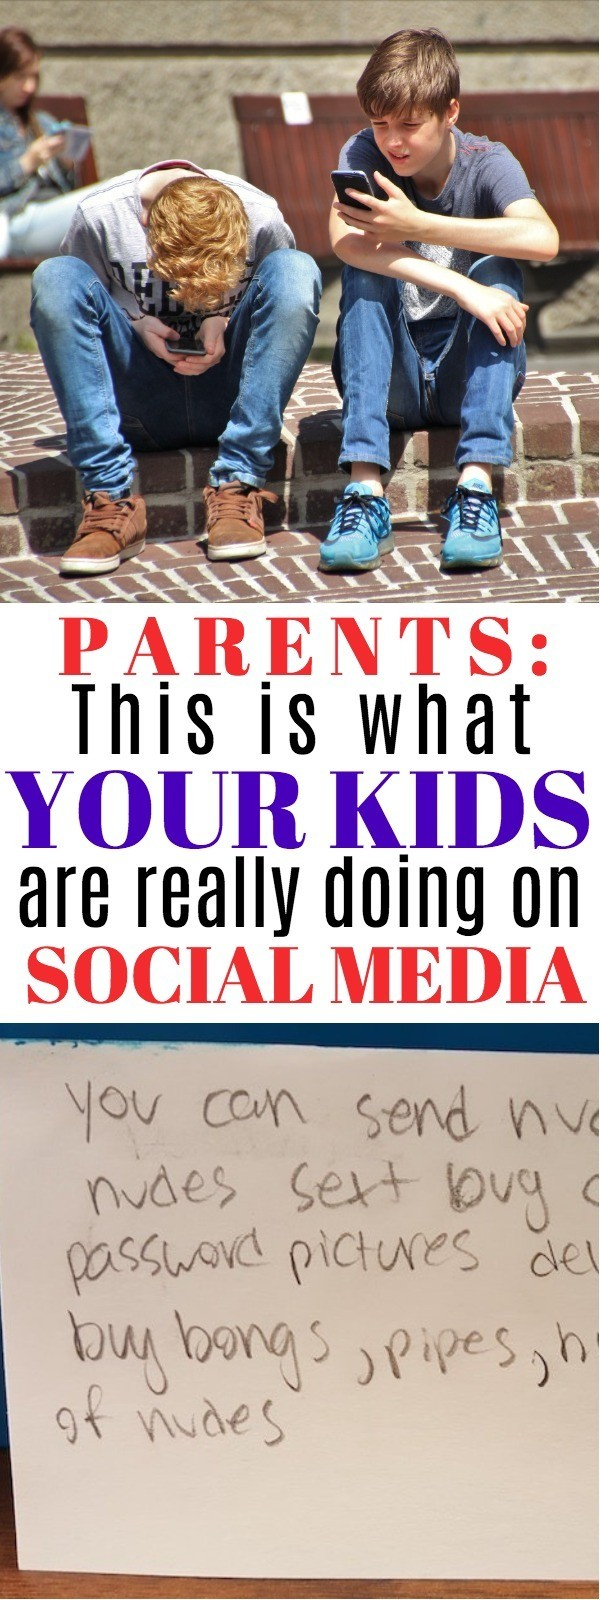 Kids and Social Media - This Behavior Is EXACTLY What Parents Should Know About Social Media